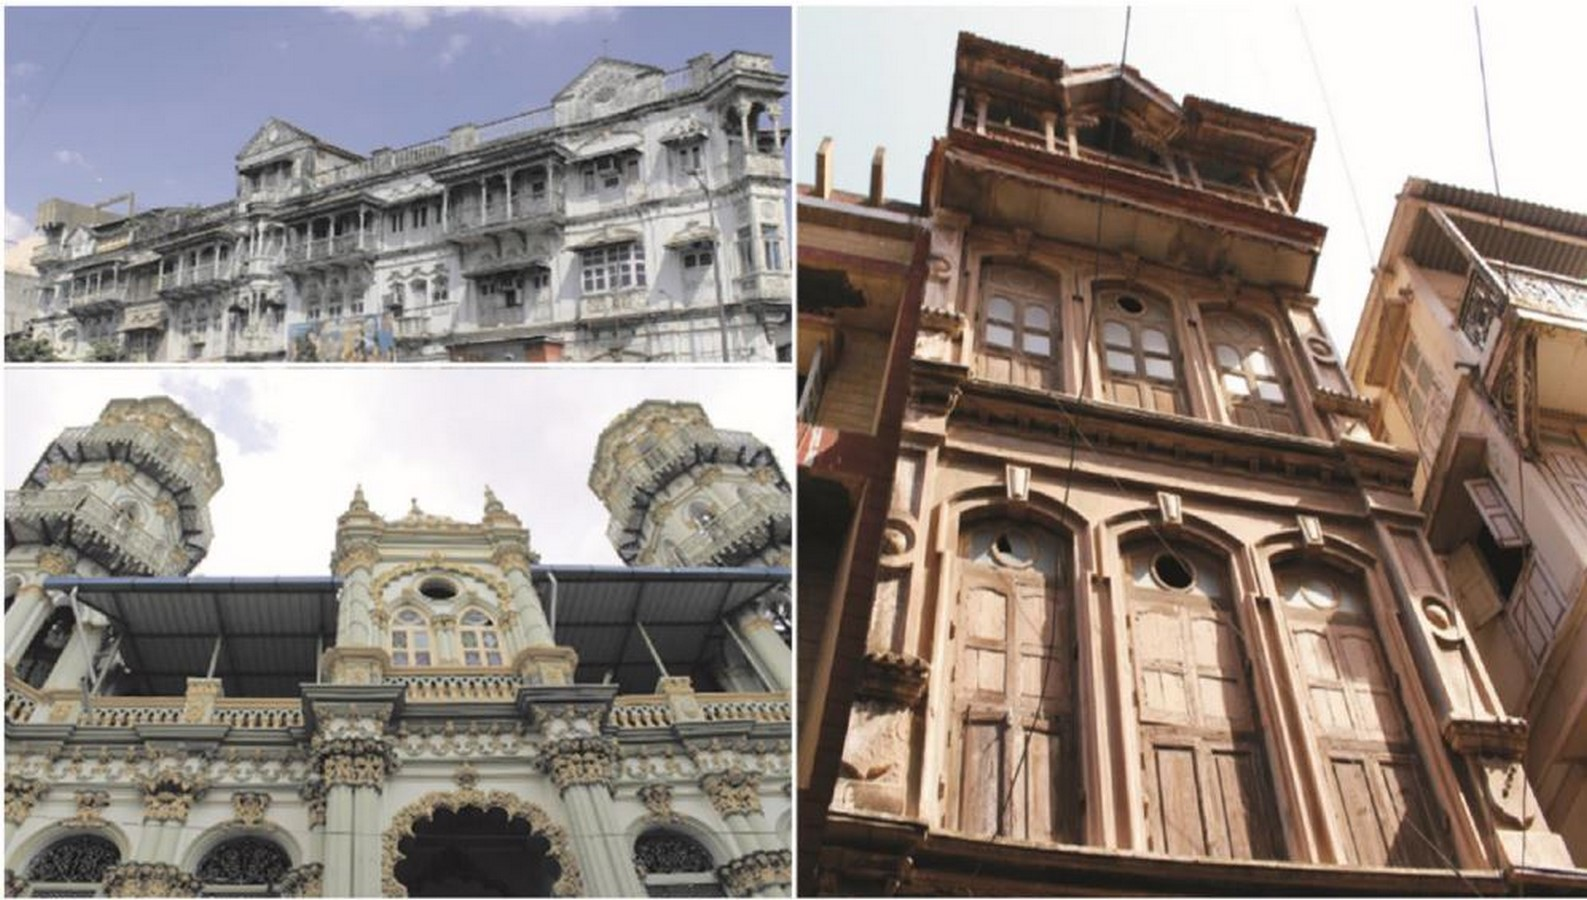 A sustainable approach for heritage conservation - Sheet11